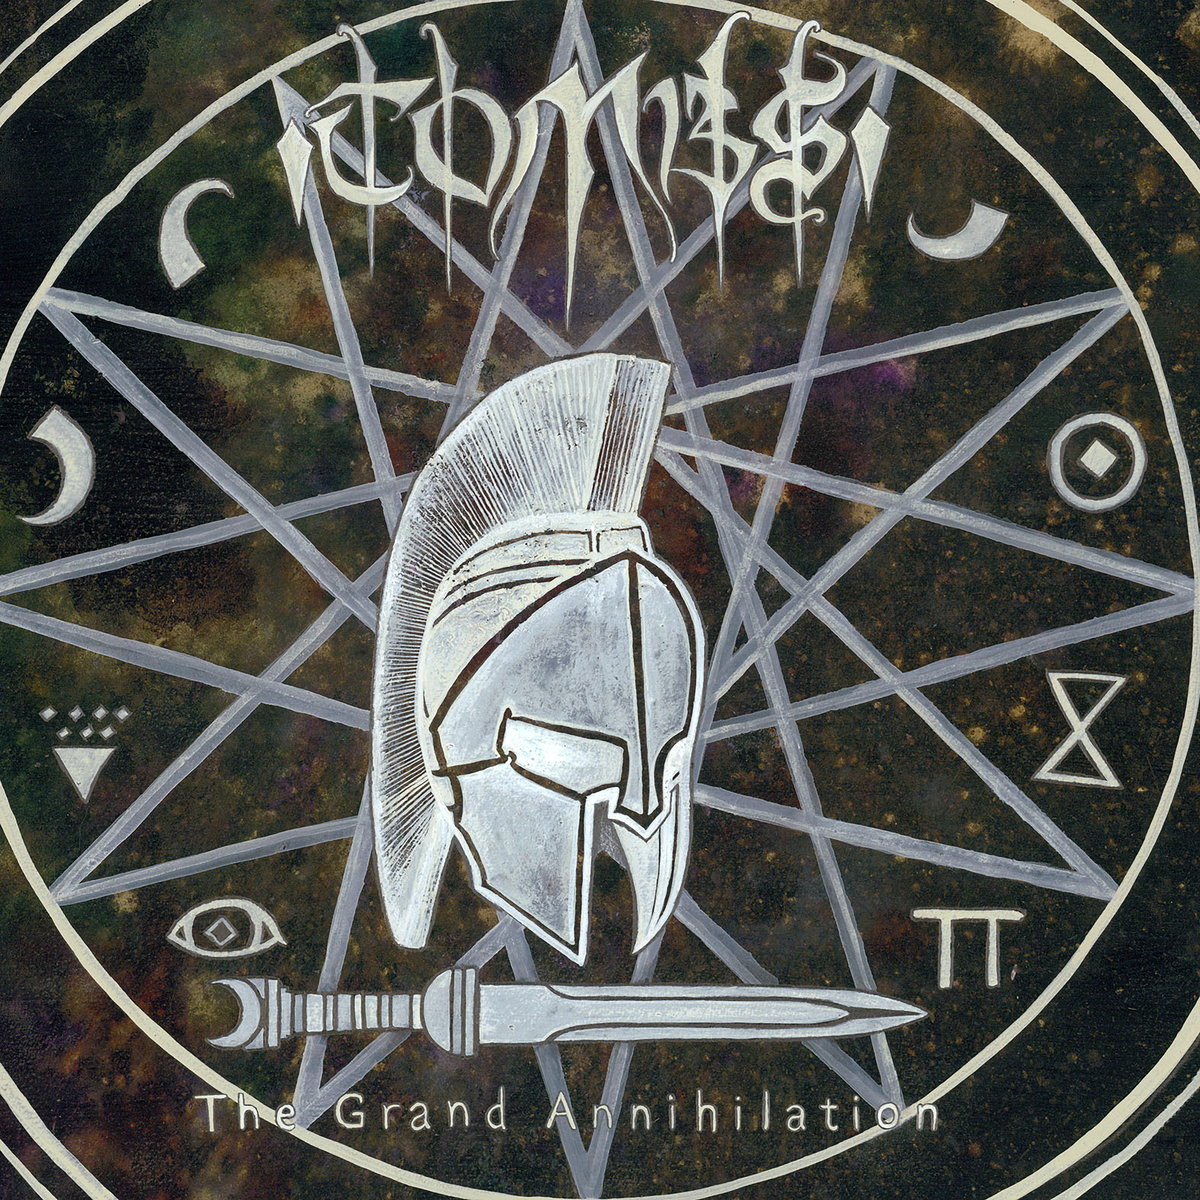 The Grand Annihilation_Album Cover